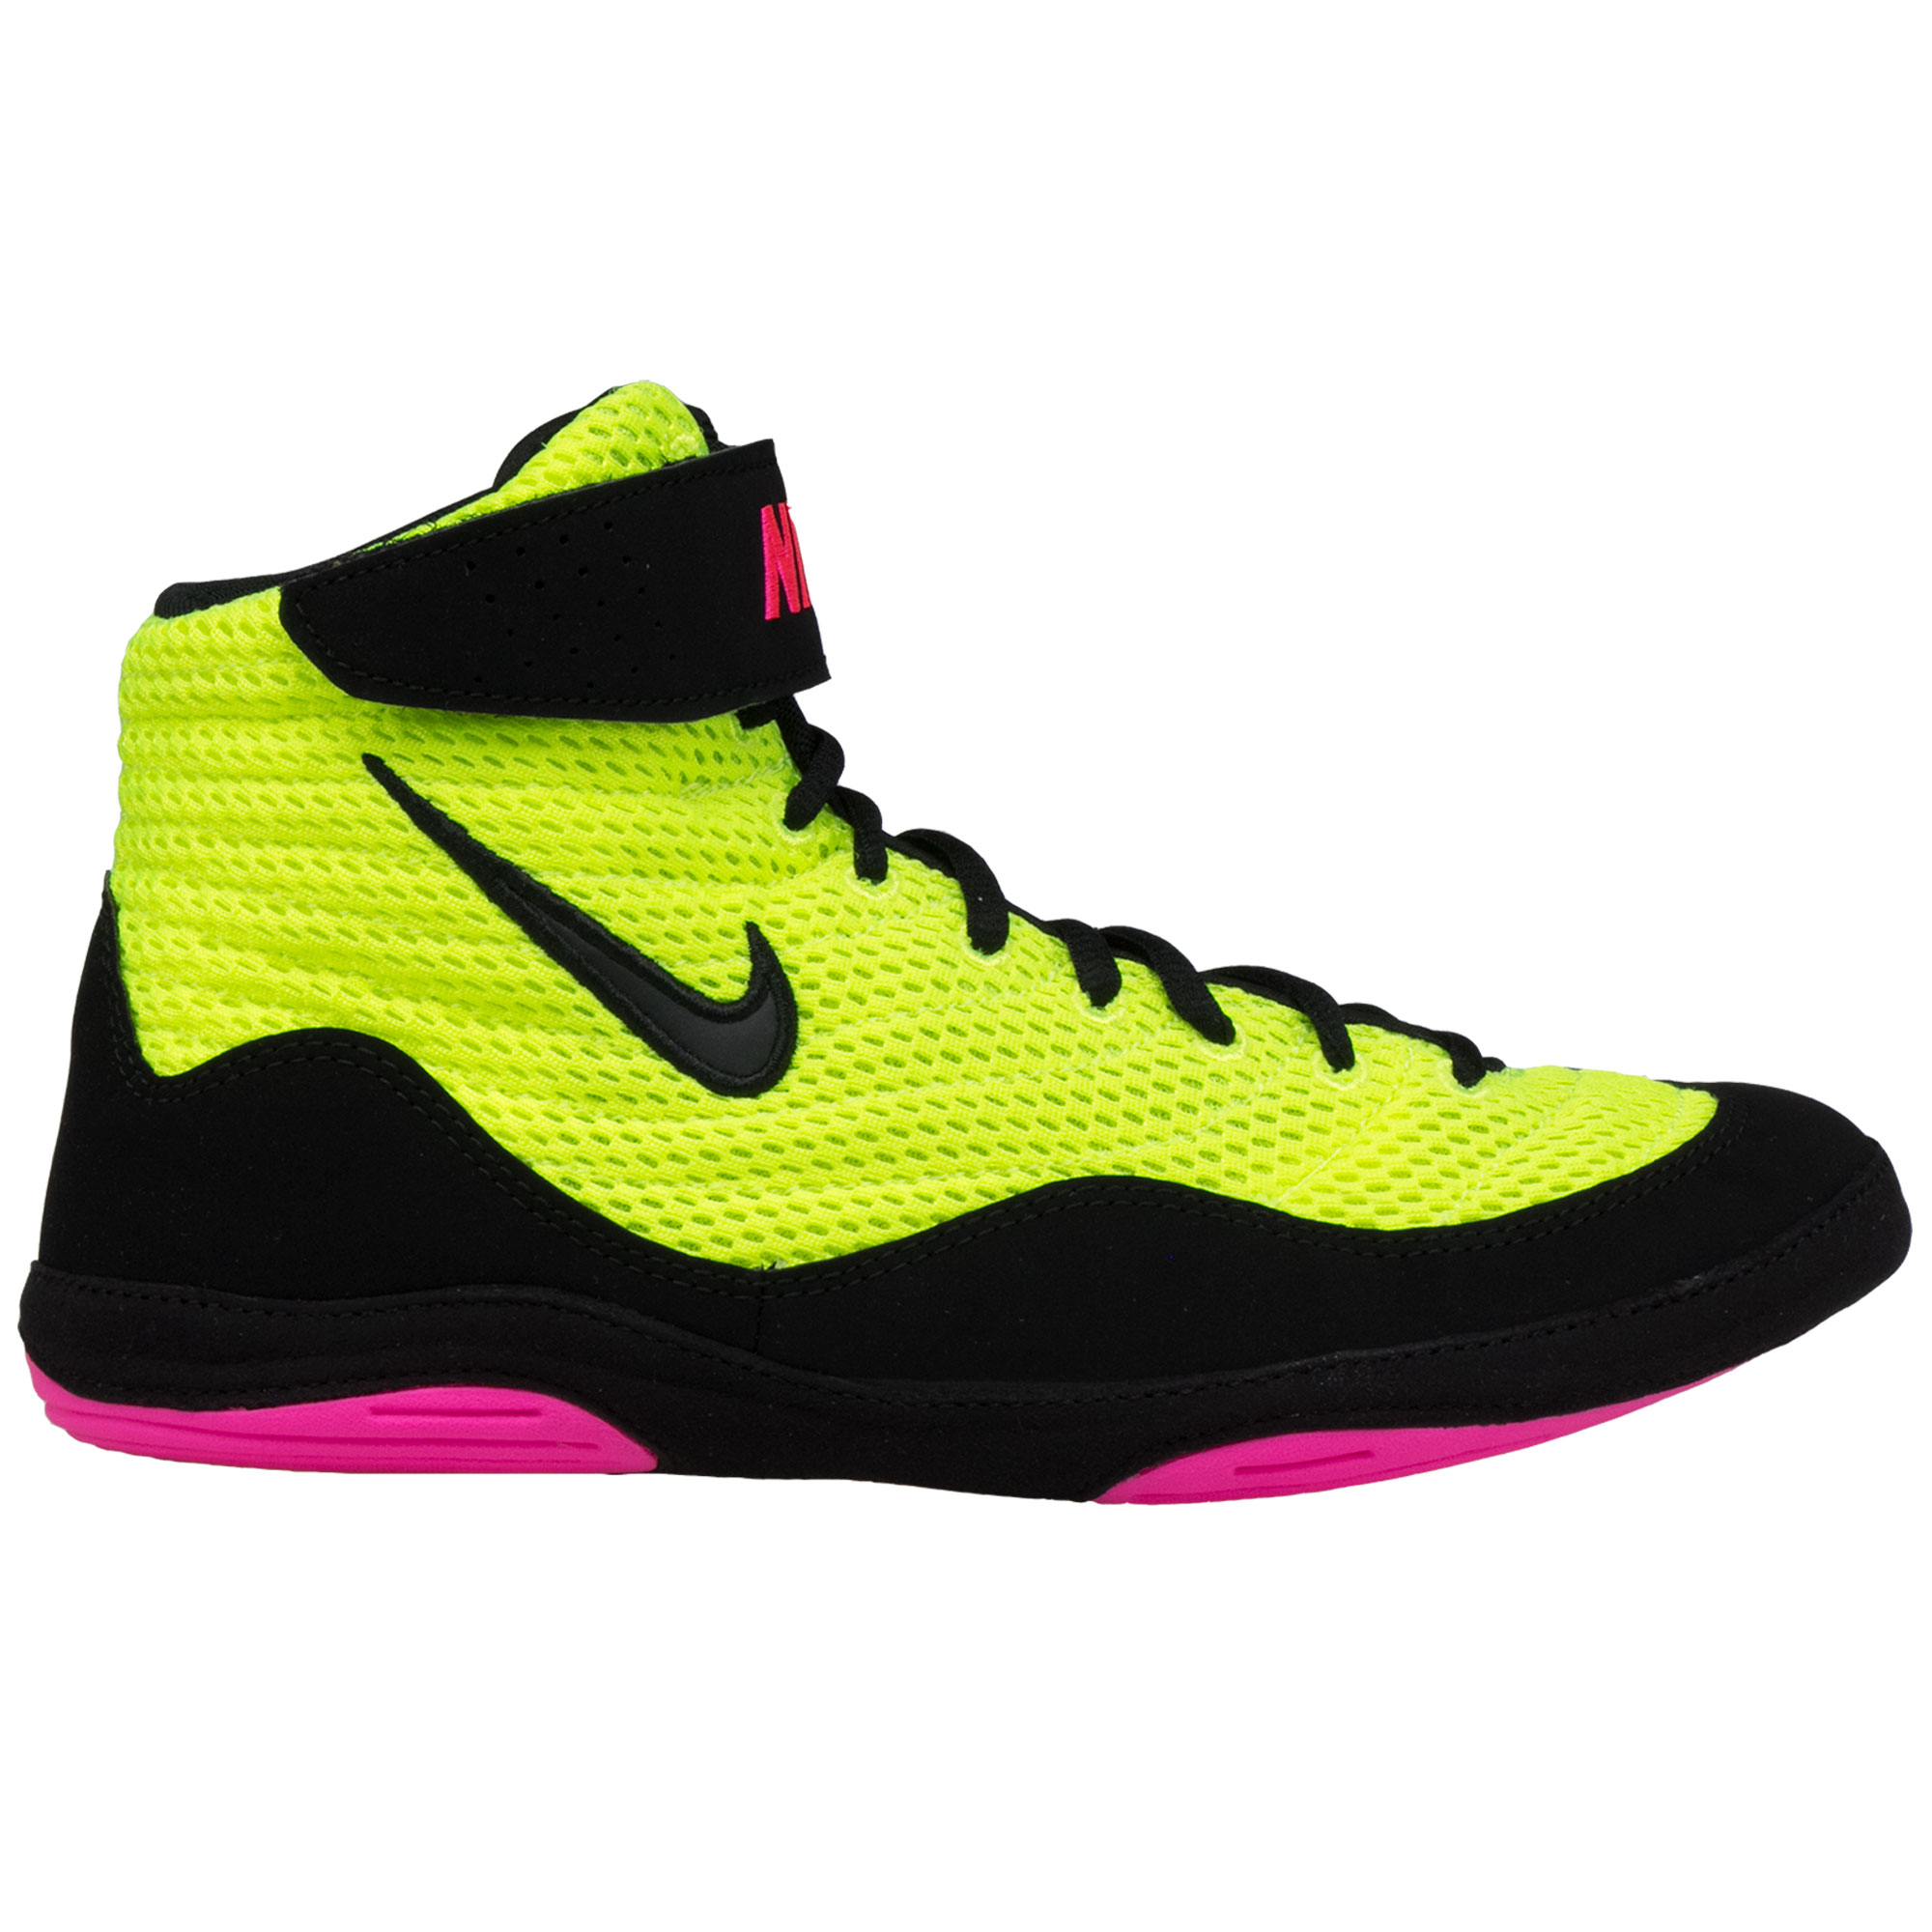 Black And Yellow Nike Wrestling Shoes